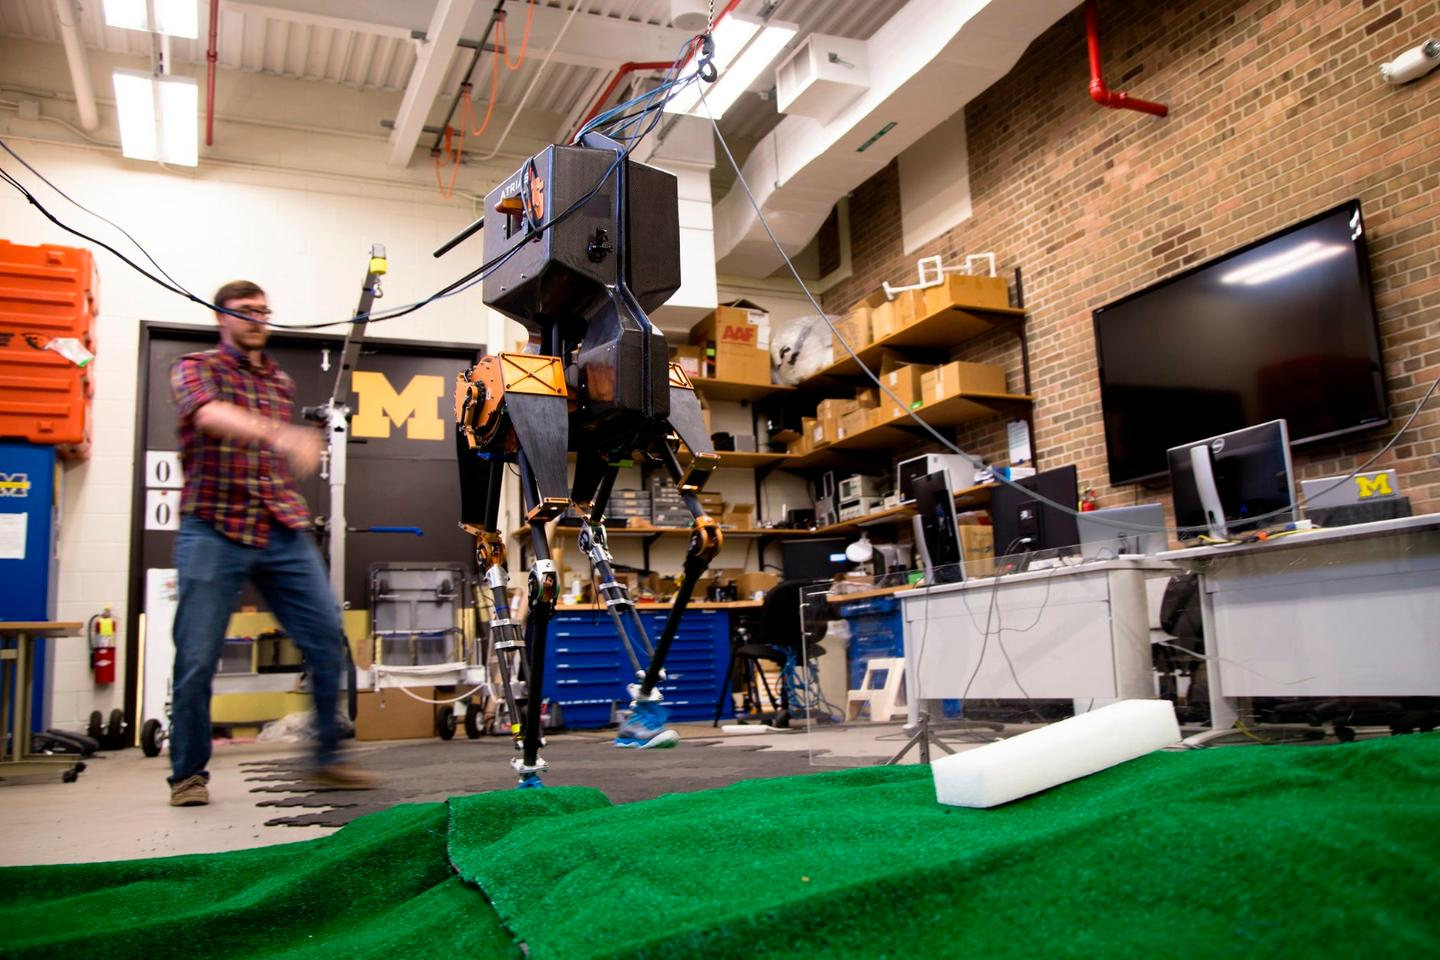 Robotics PhD student Ross Hartley watches as MARLO demonstrate's her ability to conquer tough terrain.